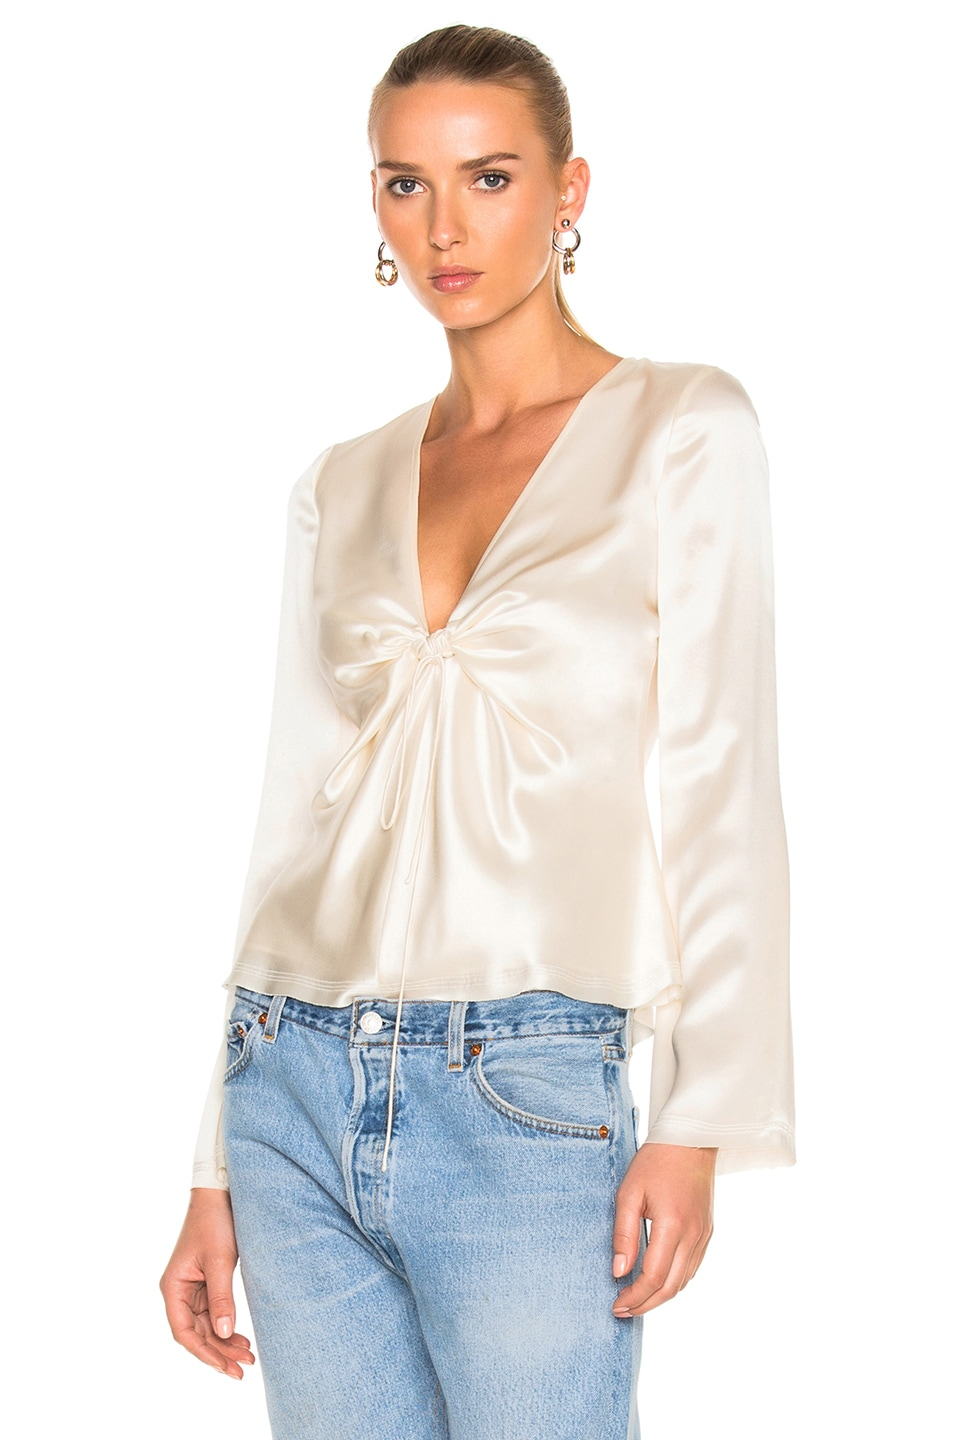 T by Alexander Wang Long Sleeve Silk Top Discount Official Site Cheap Sale Wholesale Price inHRe7BLfu